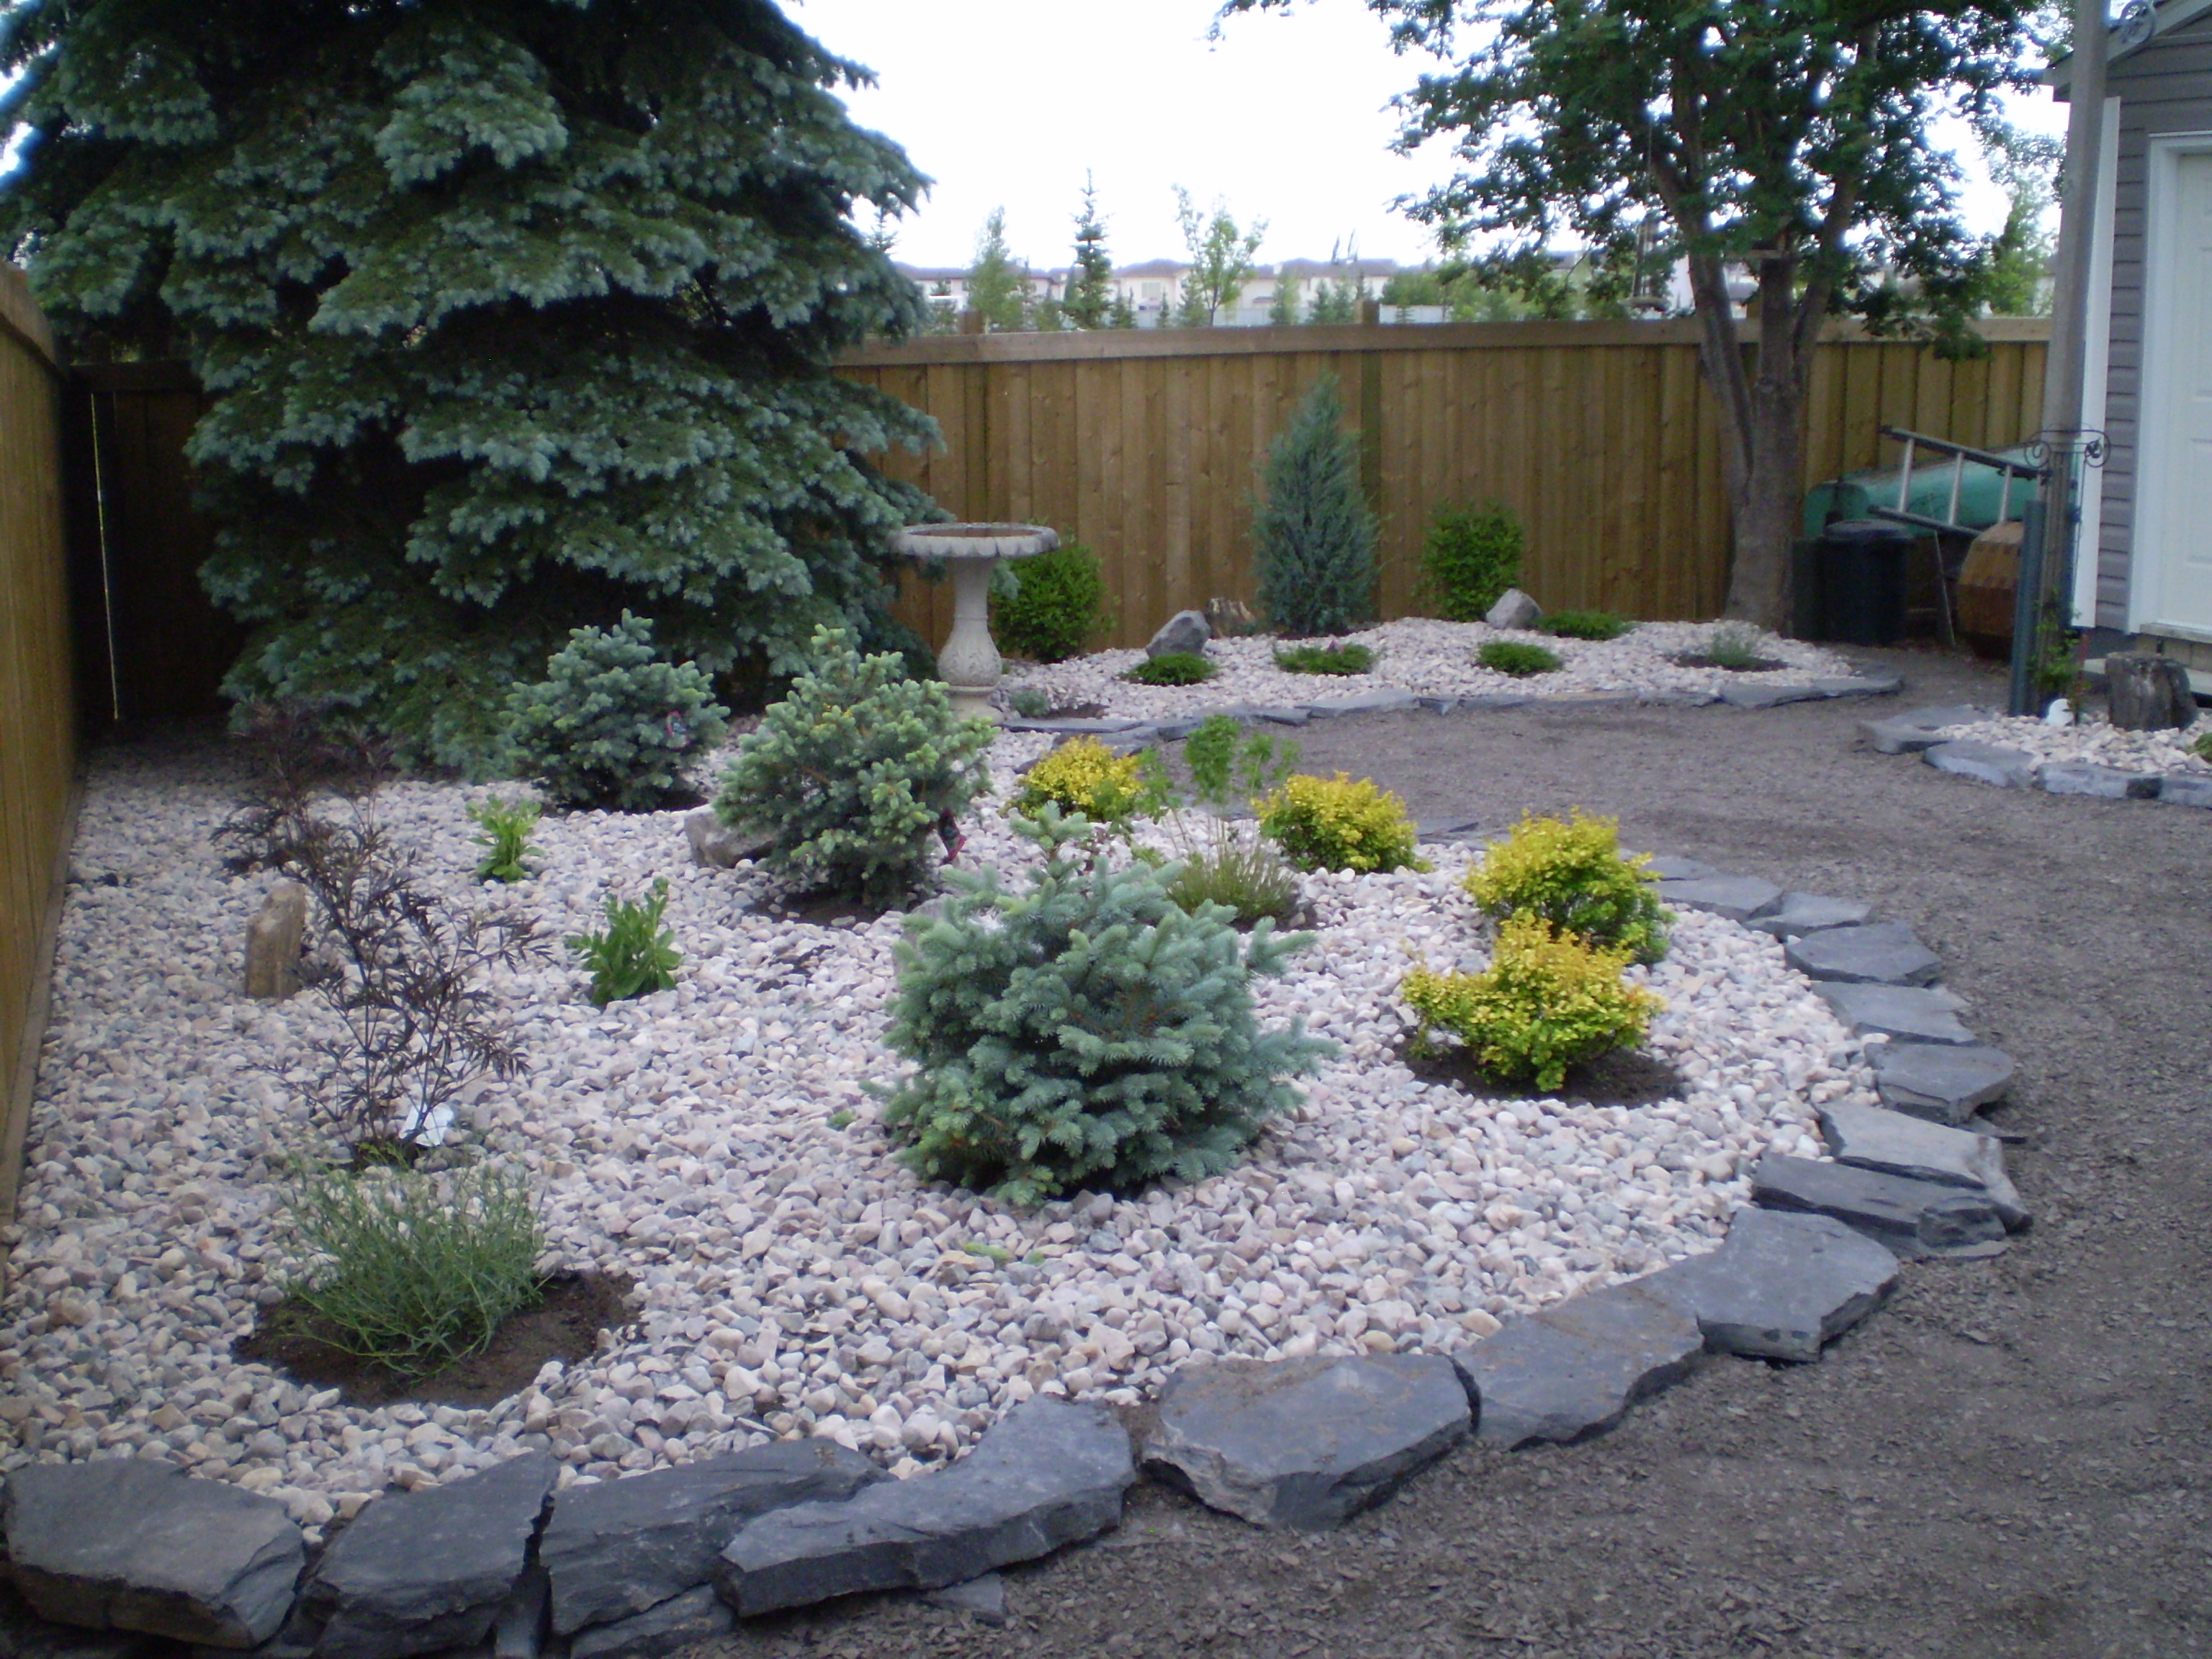 Landscaping low maintenance backyard landscaping ideas for Yard landscaping ideas